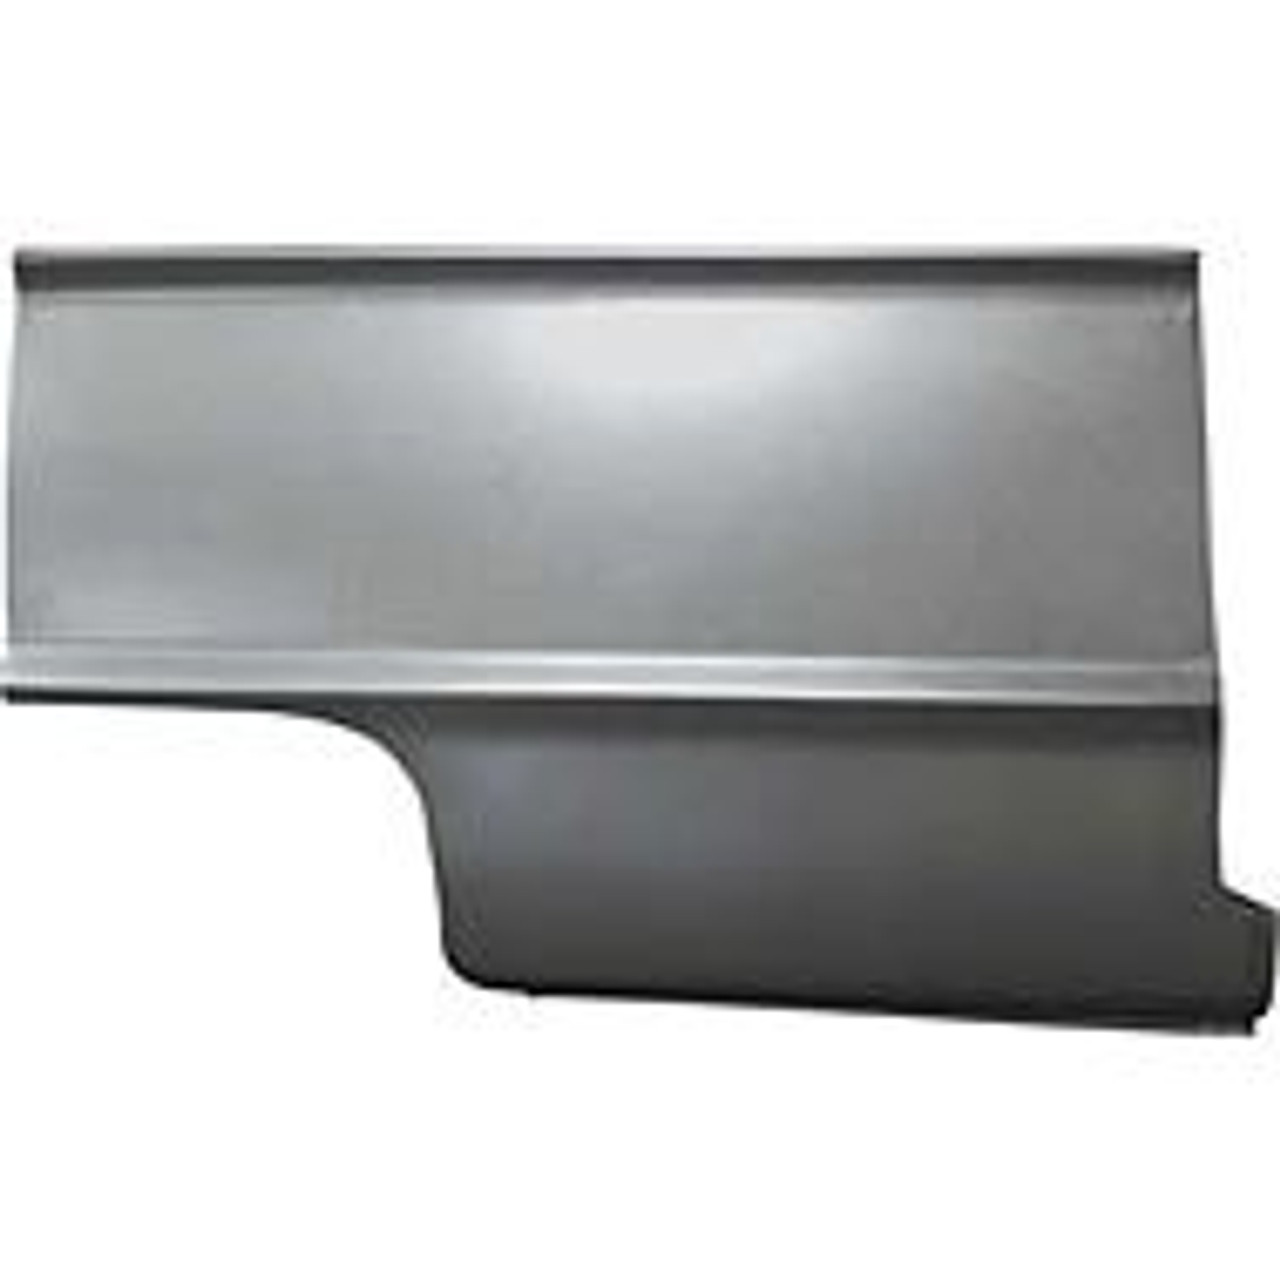 RH / 1964 FORD GALAXIE REAR QUARTER-FRONT SECTION